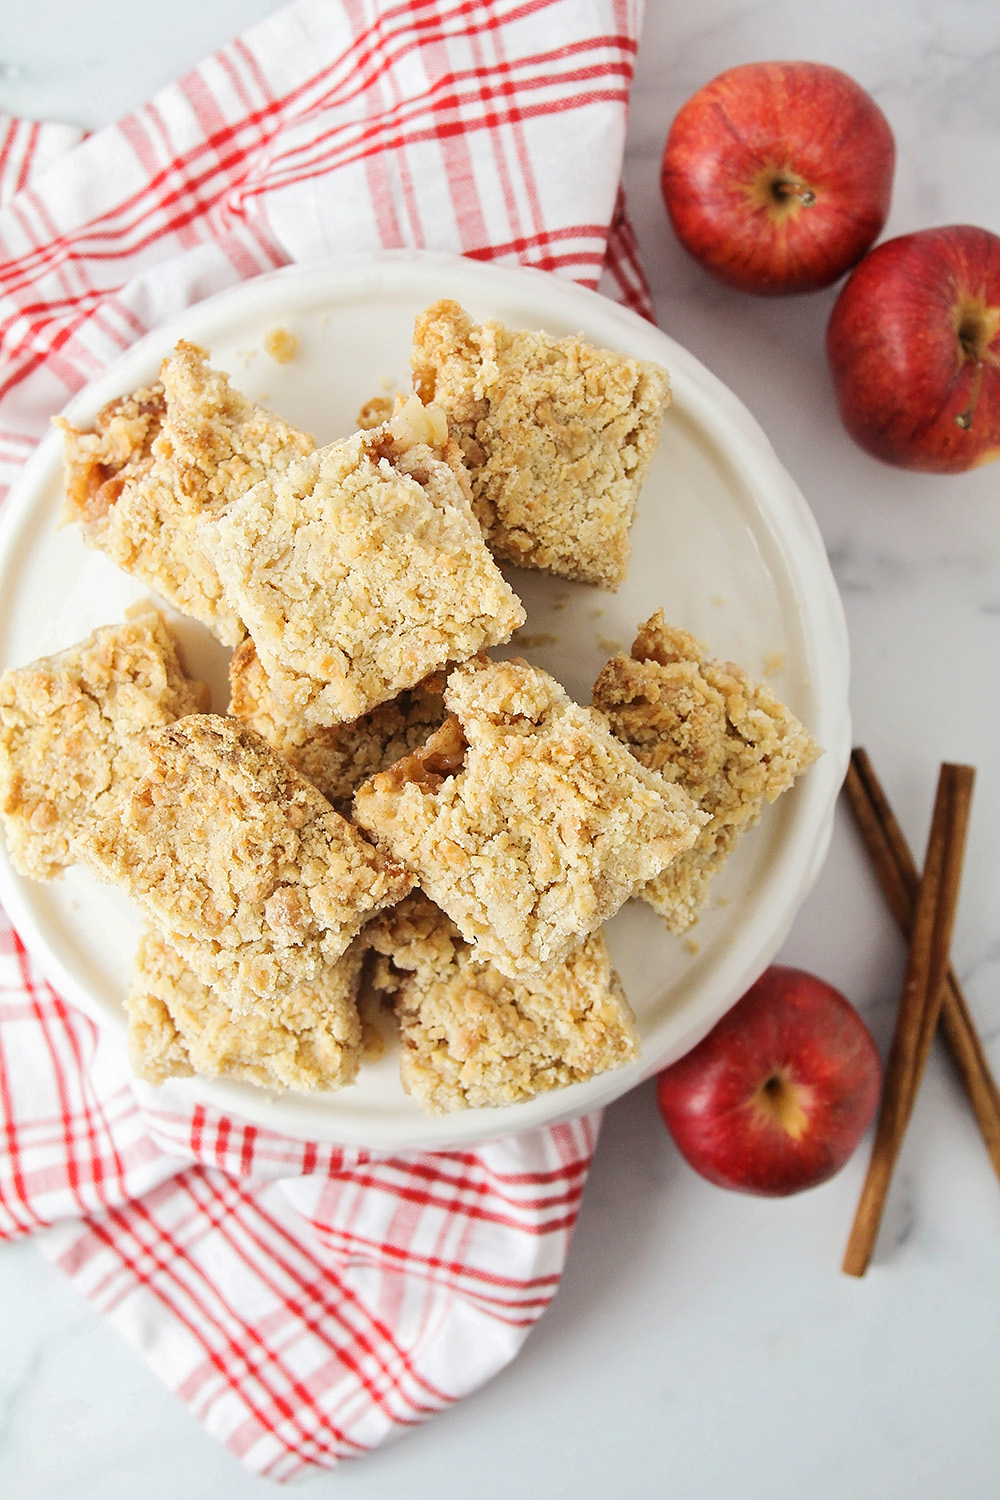 These sweet and buttery apple cinnamon crumb bars have two tender crumb layers surrounding a luscious apple filling. They're so delicious!